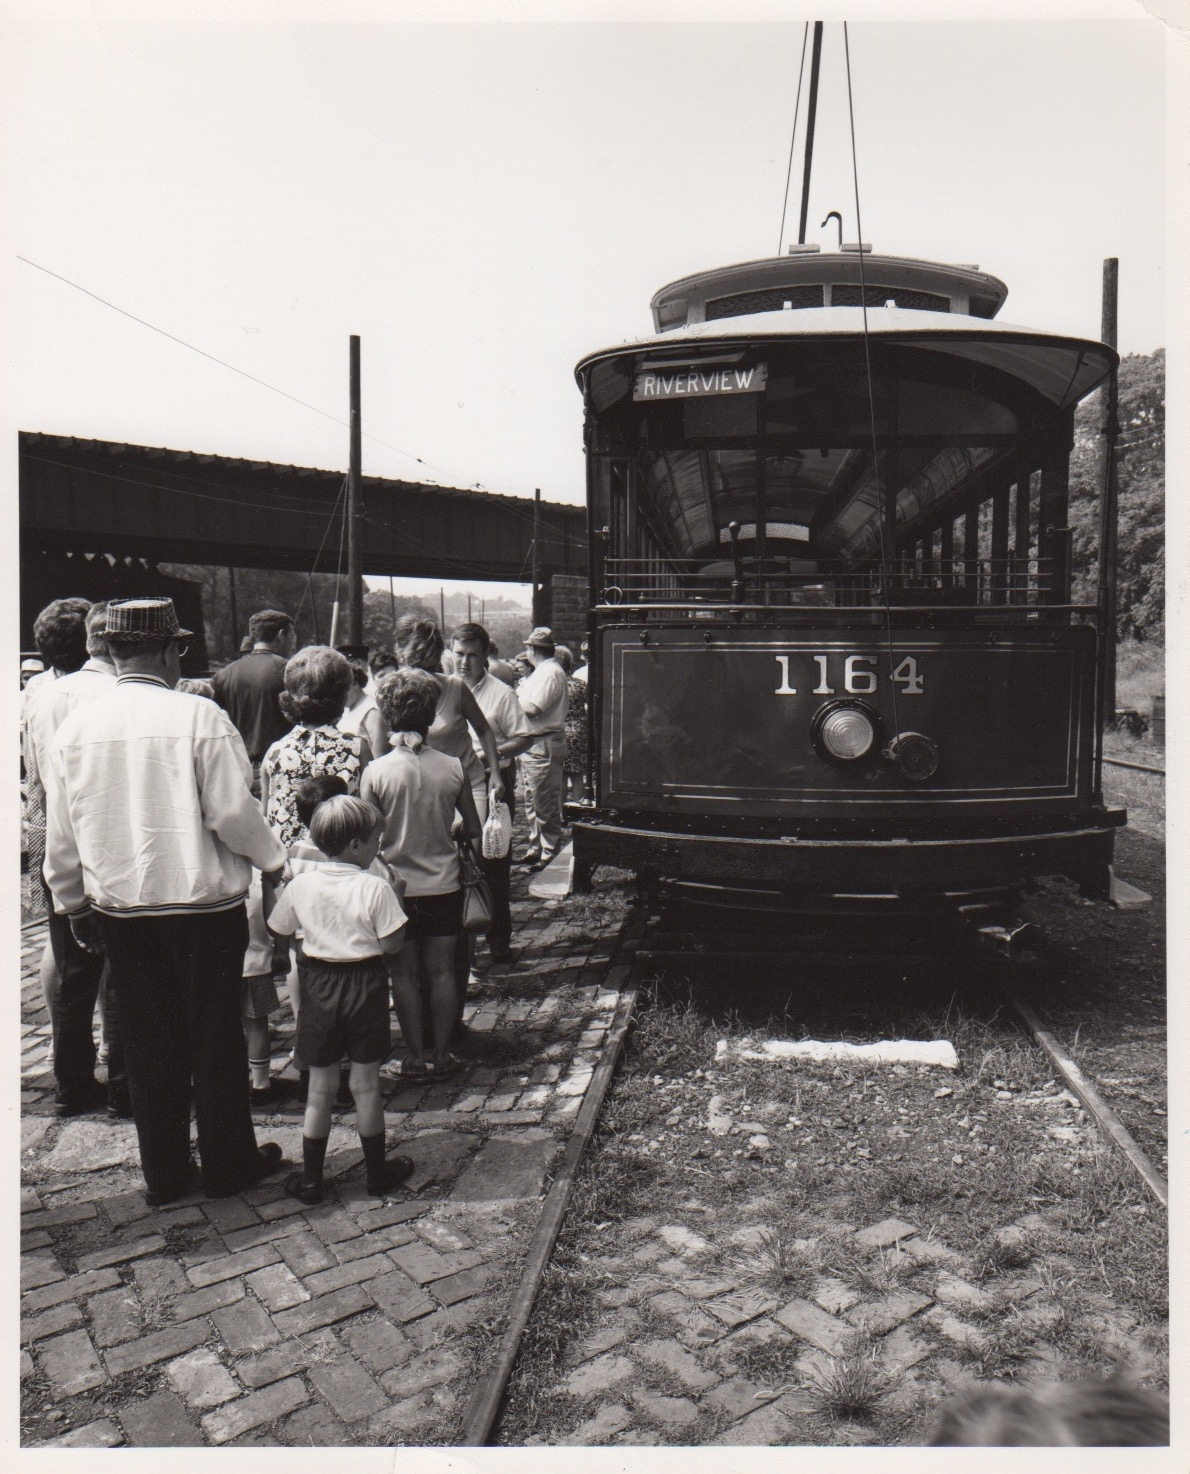 Crowds line up to ride the streetcars, opening day of the Baltimore Streetcar Museum, July 3, 1970. Image Credit: B L Braun